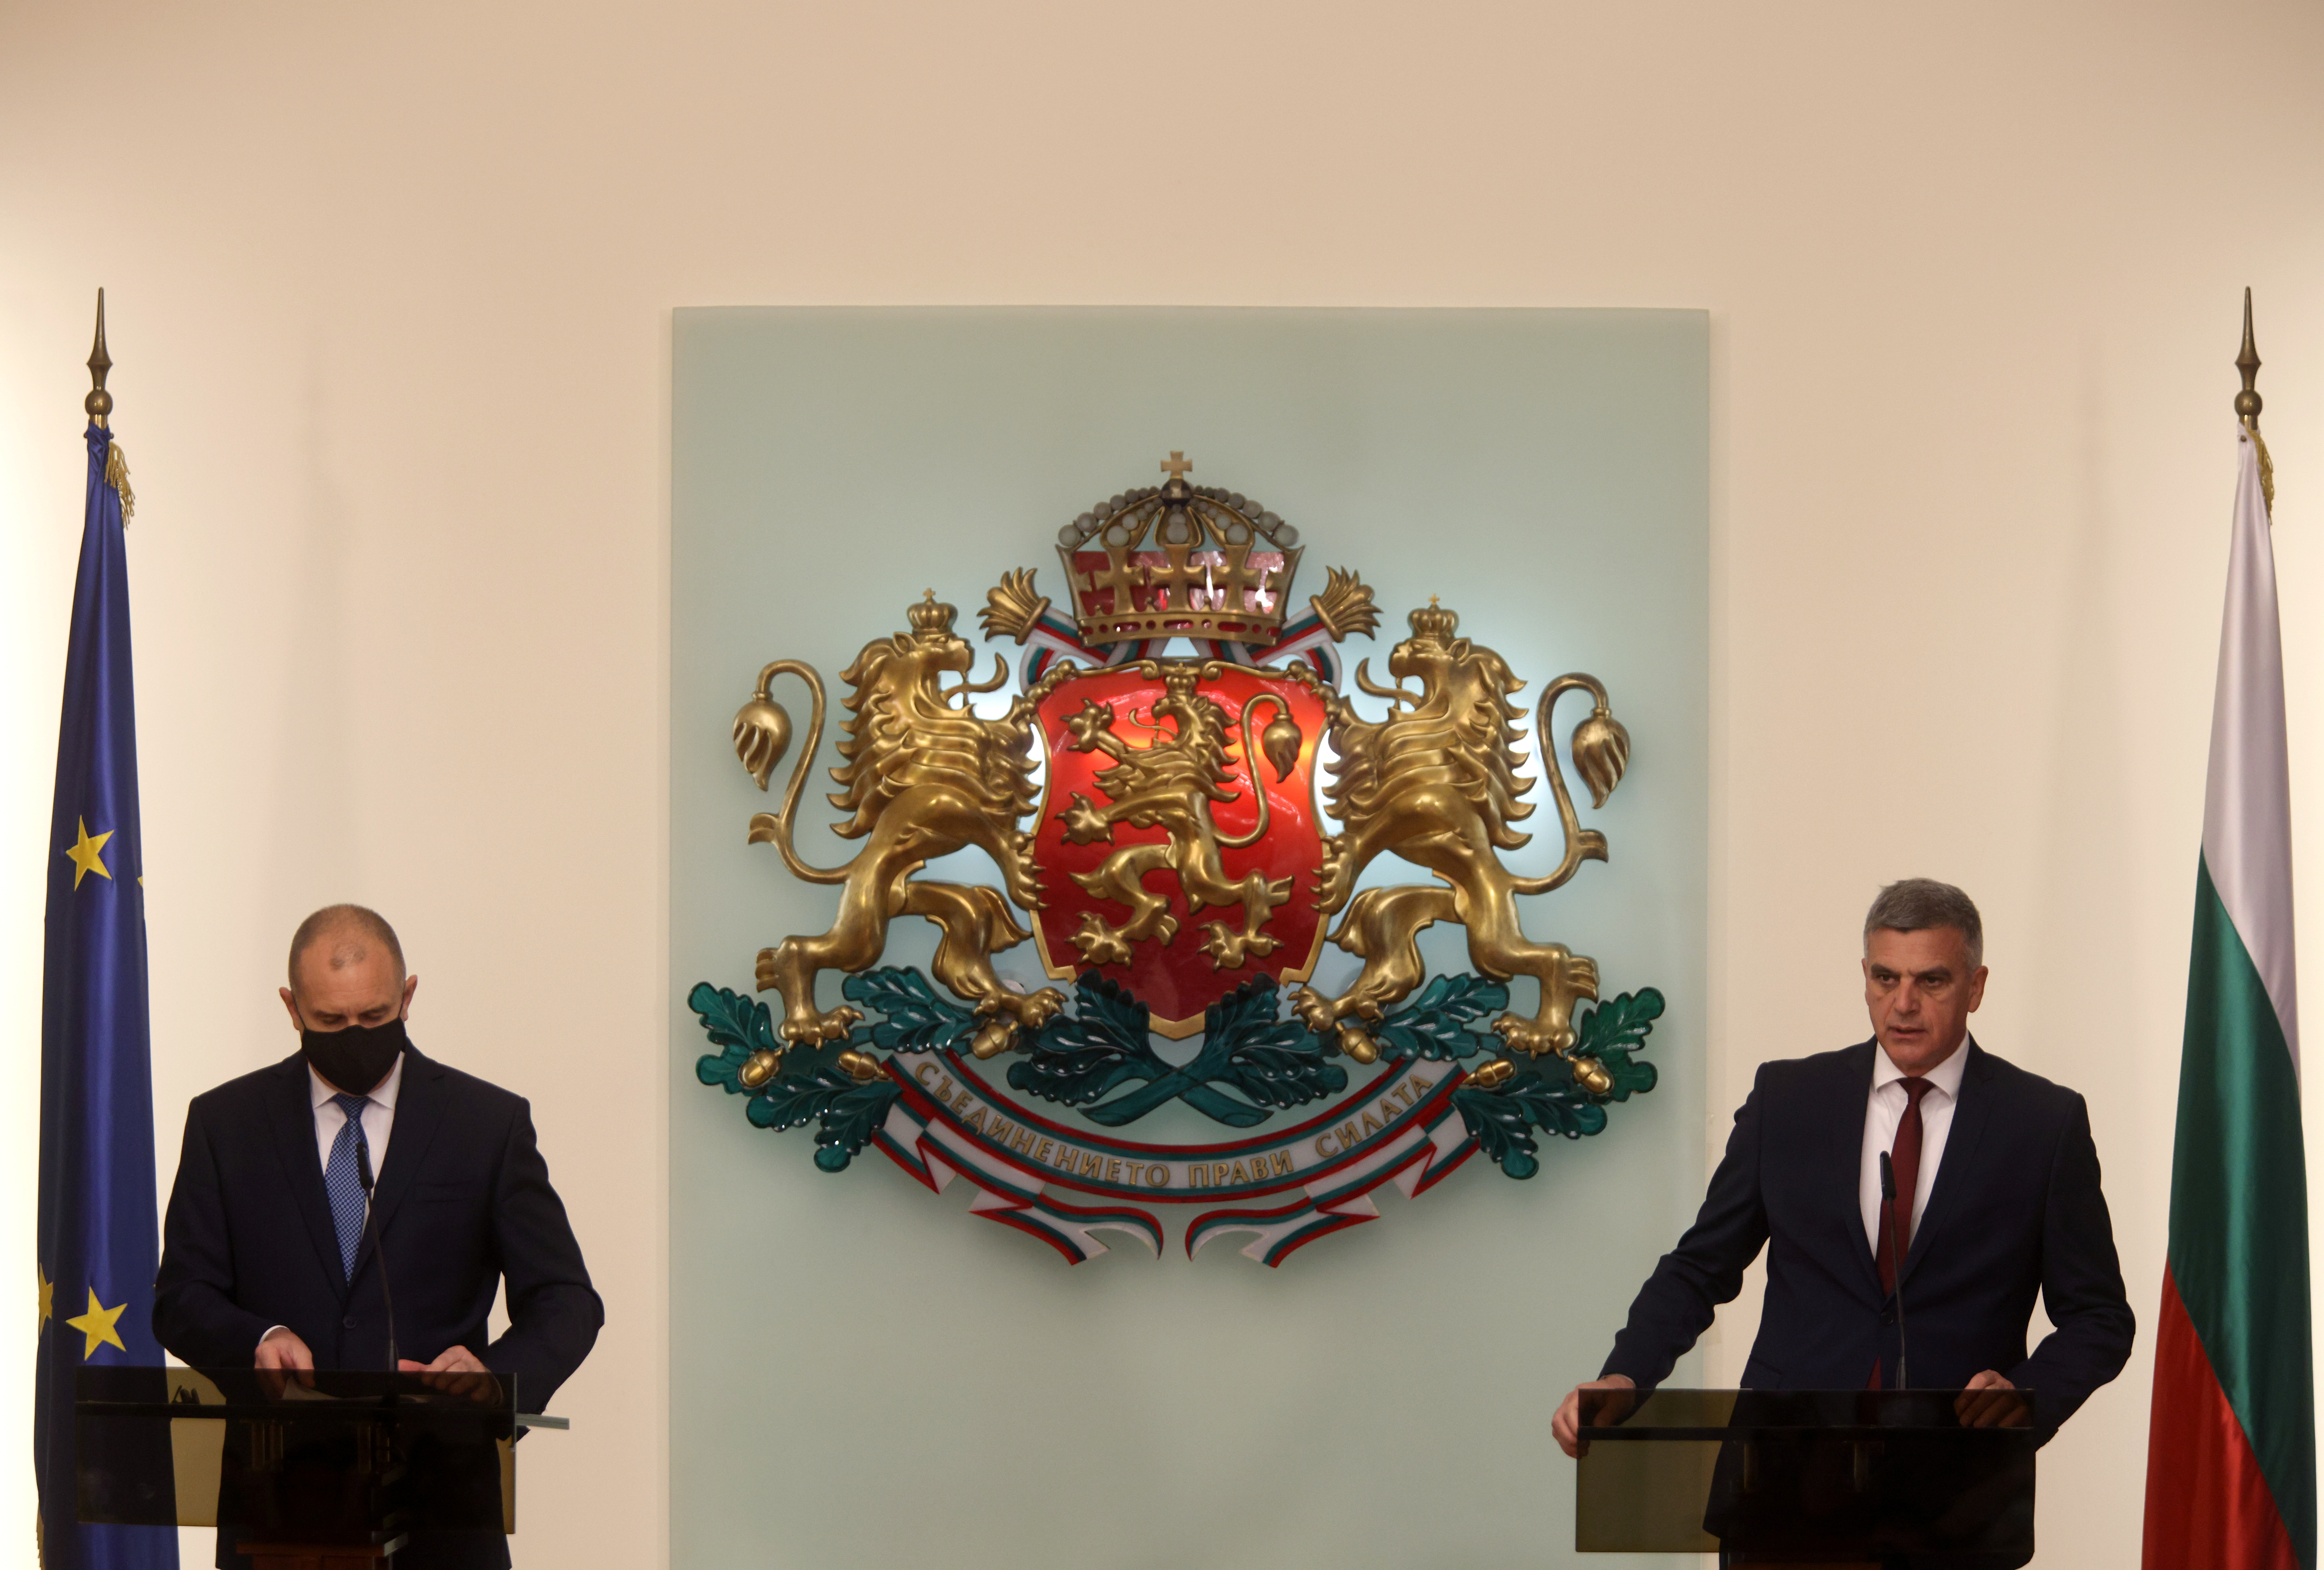 Newly appointed caretaker Prime Minister Stefan Yanev speaks next to Bulgaria's President Rumen Radev during an official ceremony in Sofia, Bulgaria, May 12, 2021. REUTERS/Stoyan Nenov